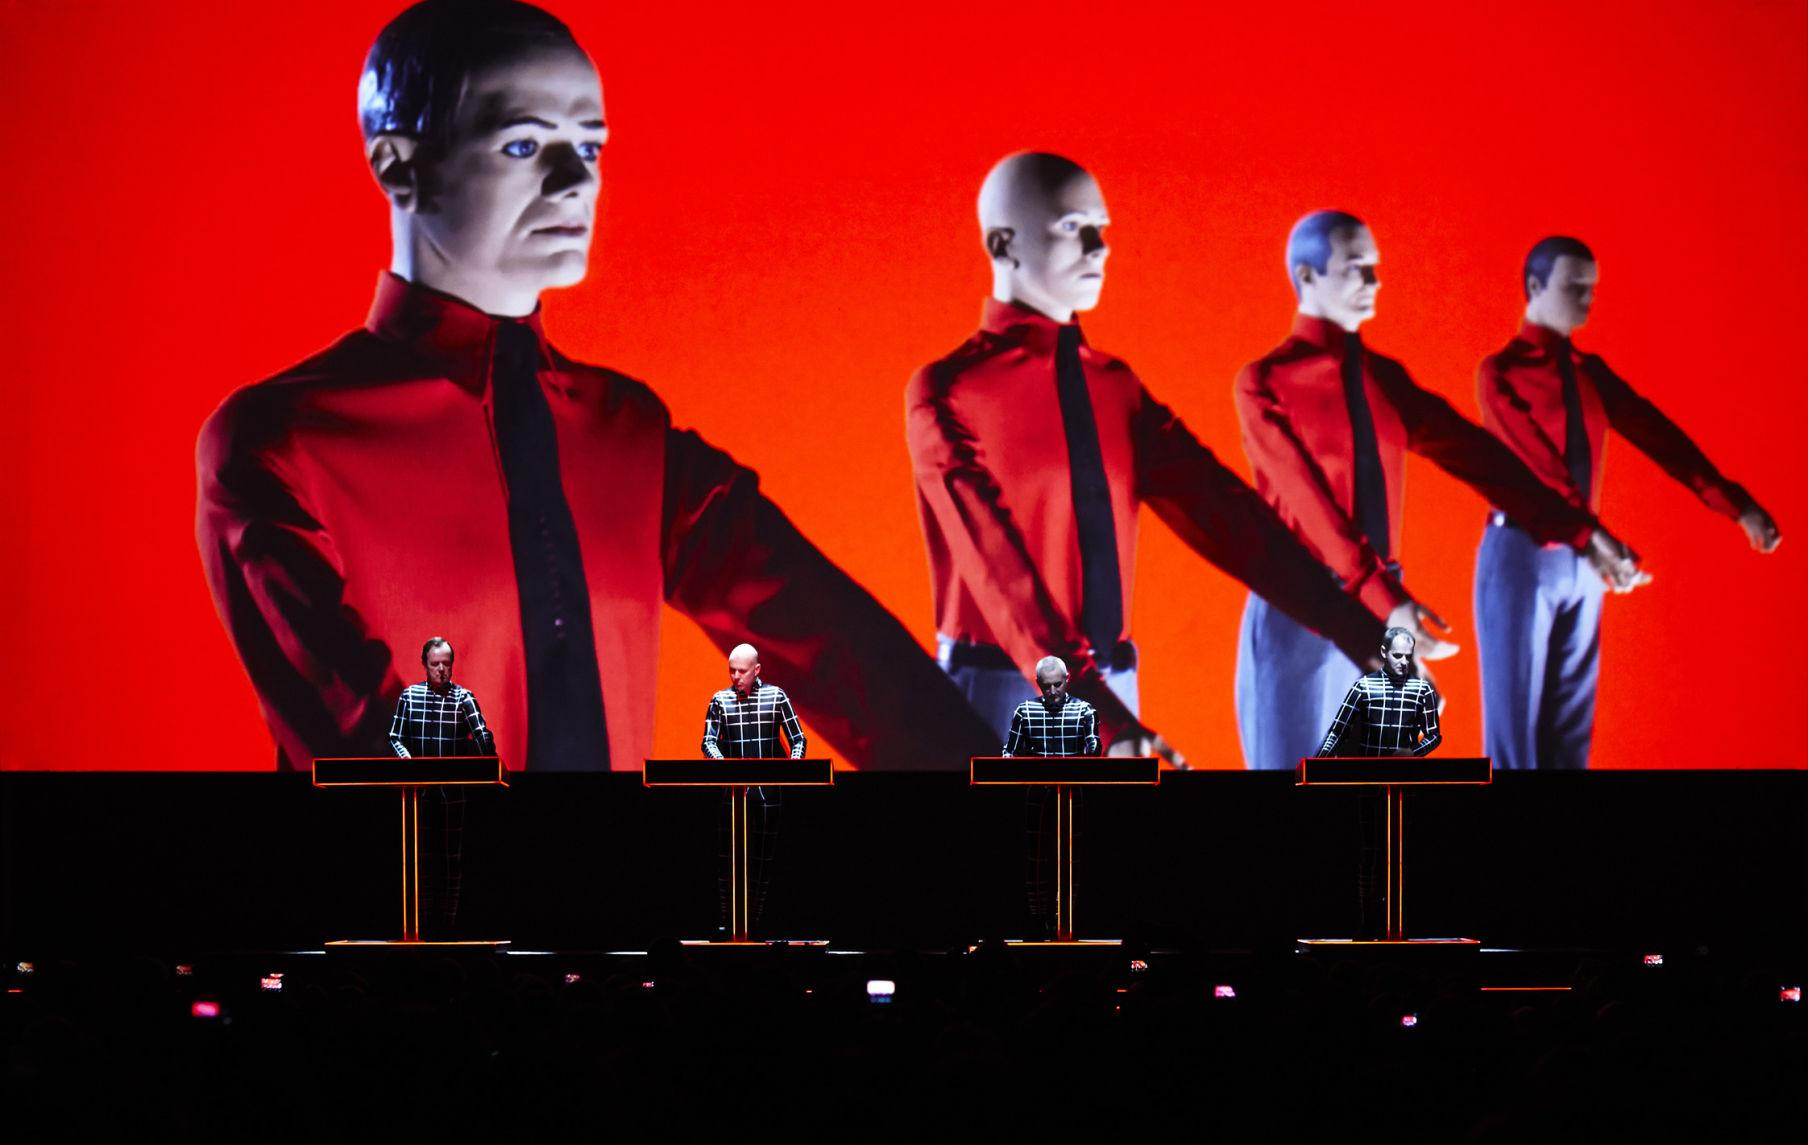 Kraftwerk uses creative and unorthodox visuals during concert.